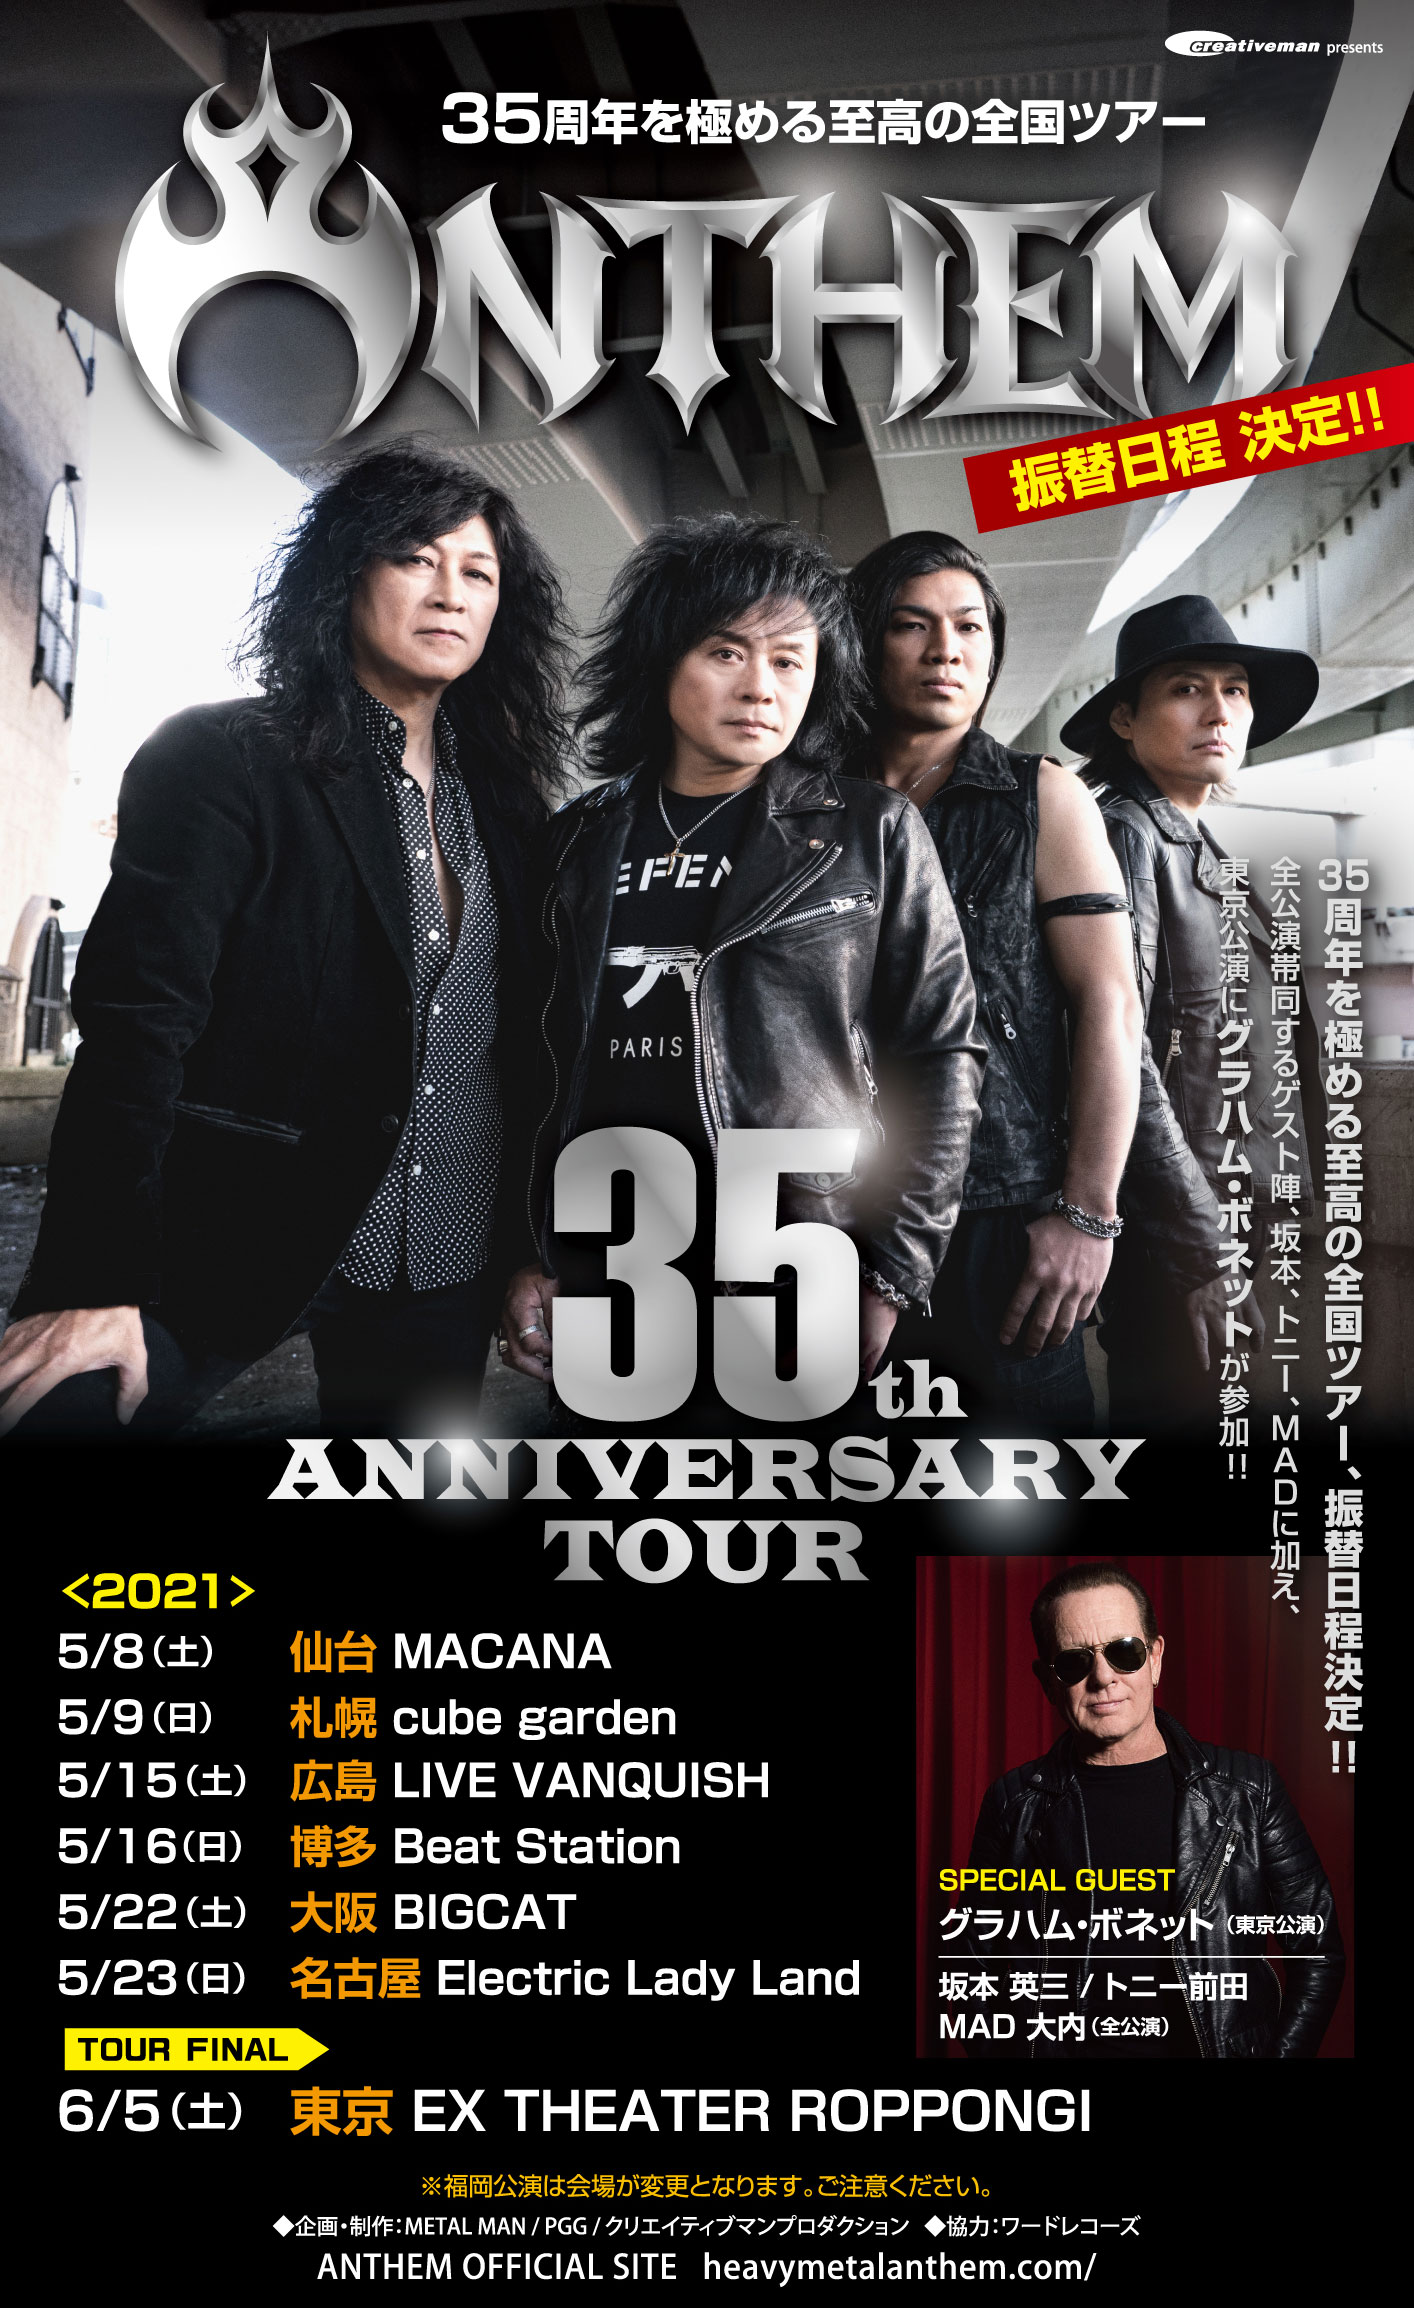 【公演延期】ANTHEM 35th ANNIVERSARY TOUR [広島]